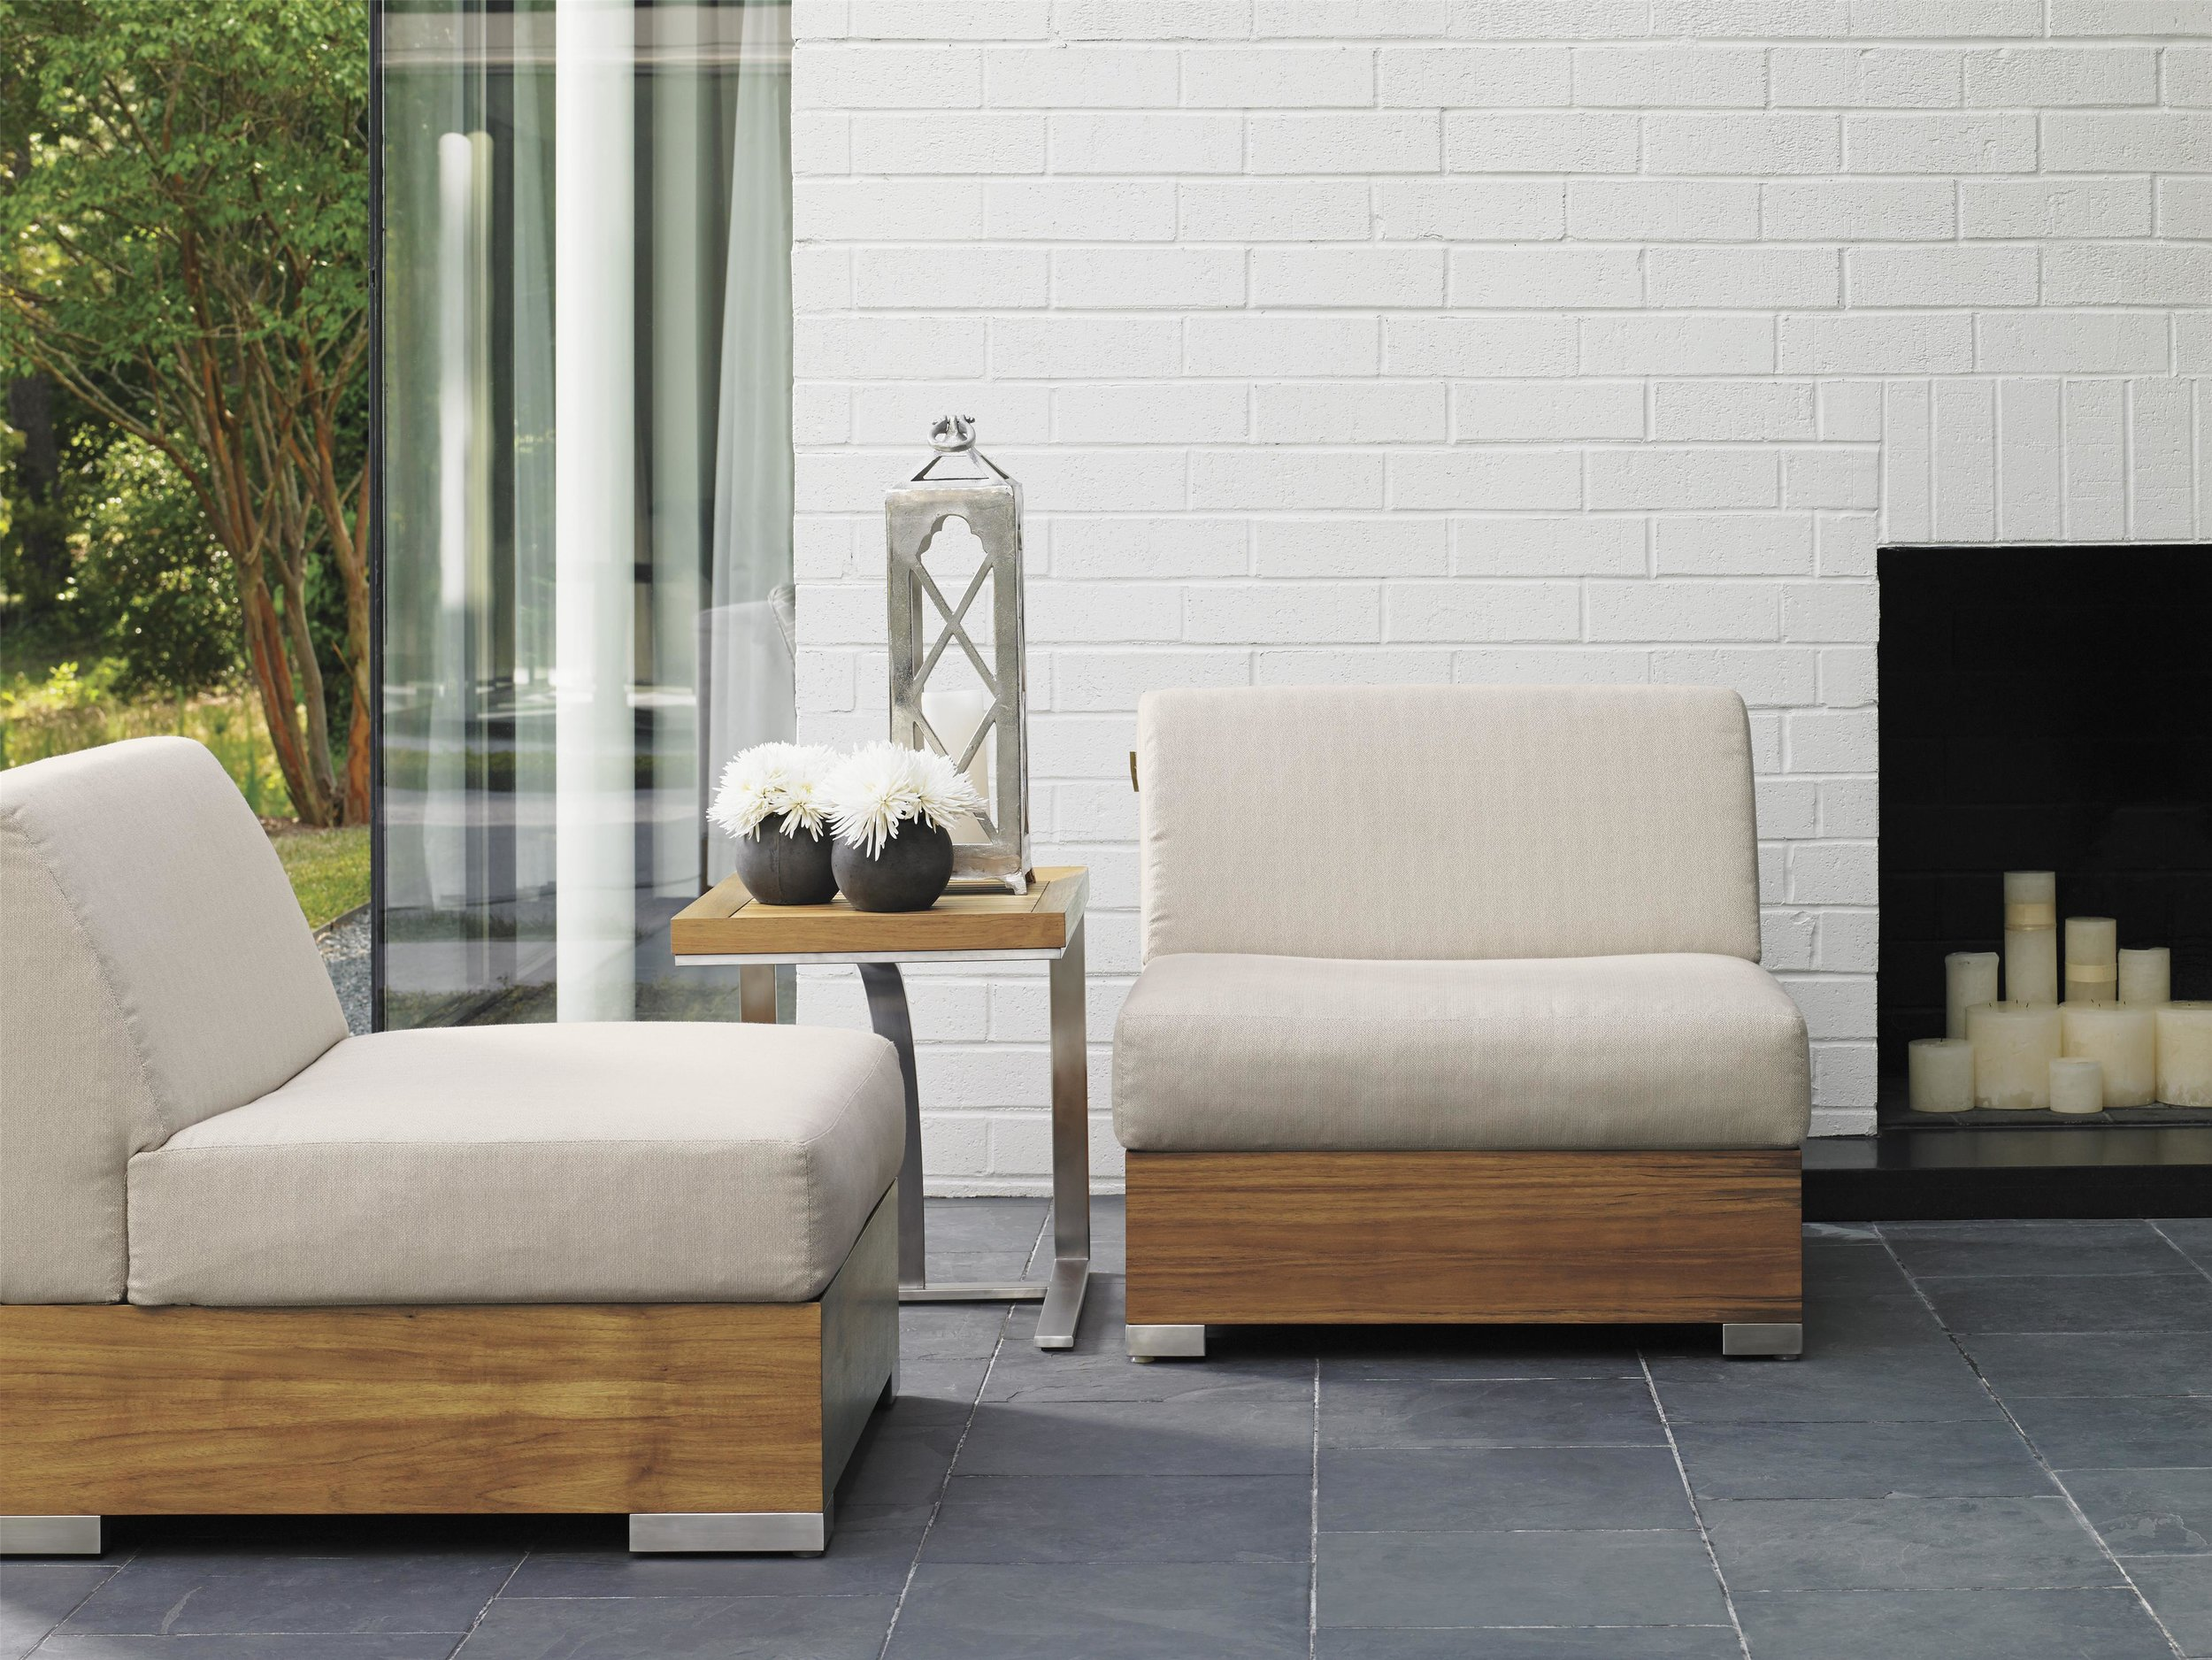 collections-tommy_bahama_outdoor_living-tres chic_3401-zzz-b12.jpg